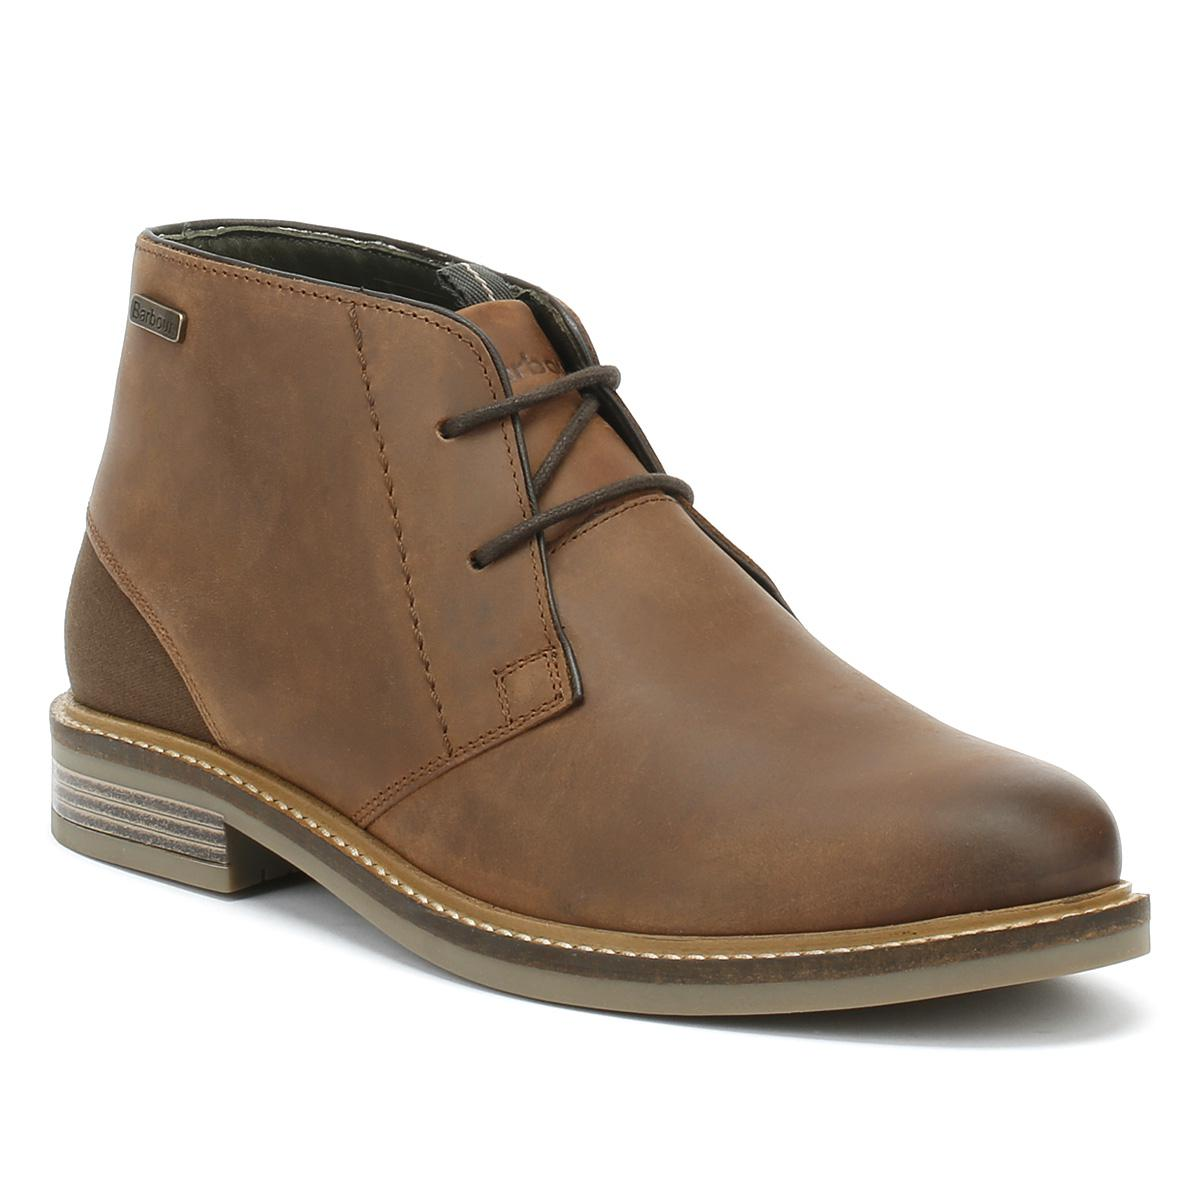 6148cda66d2 Barbour Mens Redhead Tan Boots in Brown for Men - Save 2% - Lyst